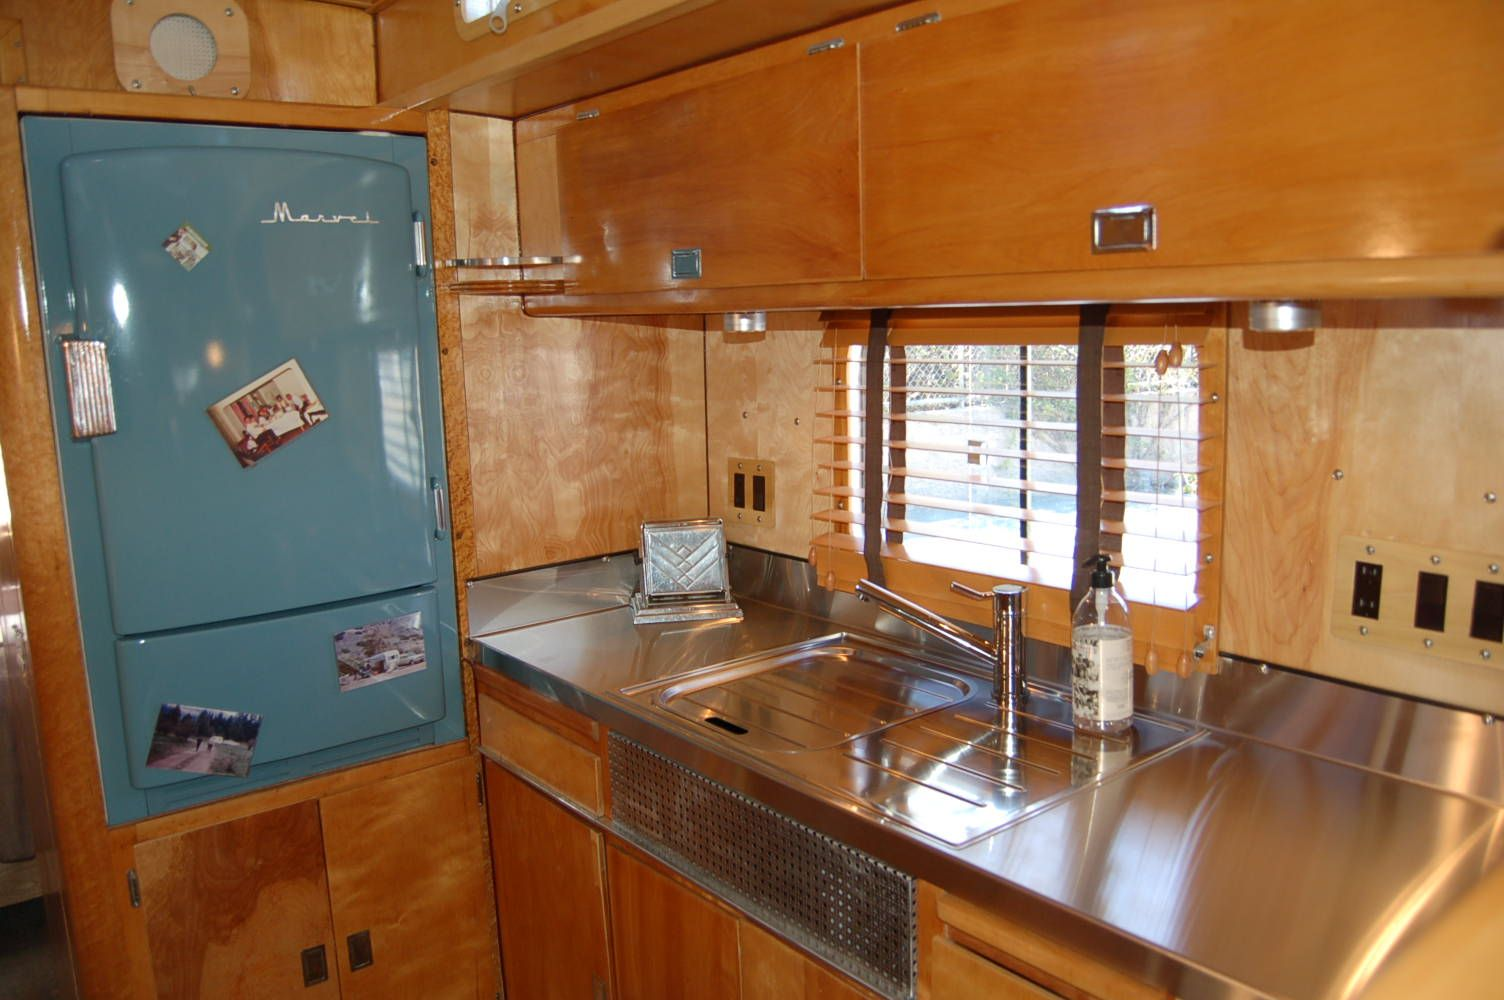 Rv Kitchen Cabinets Photo Of Kitchen Counter And Cabinetry In Westcraft  Sequoia Trailer